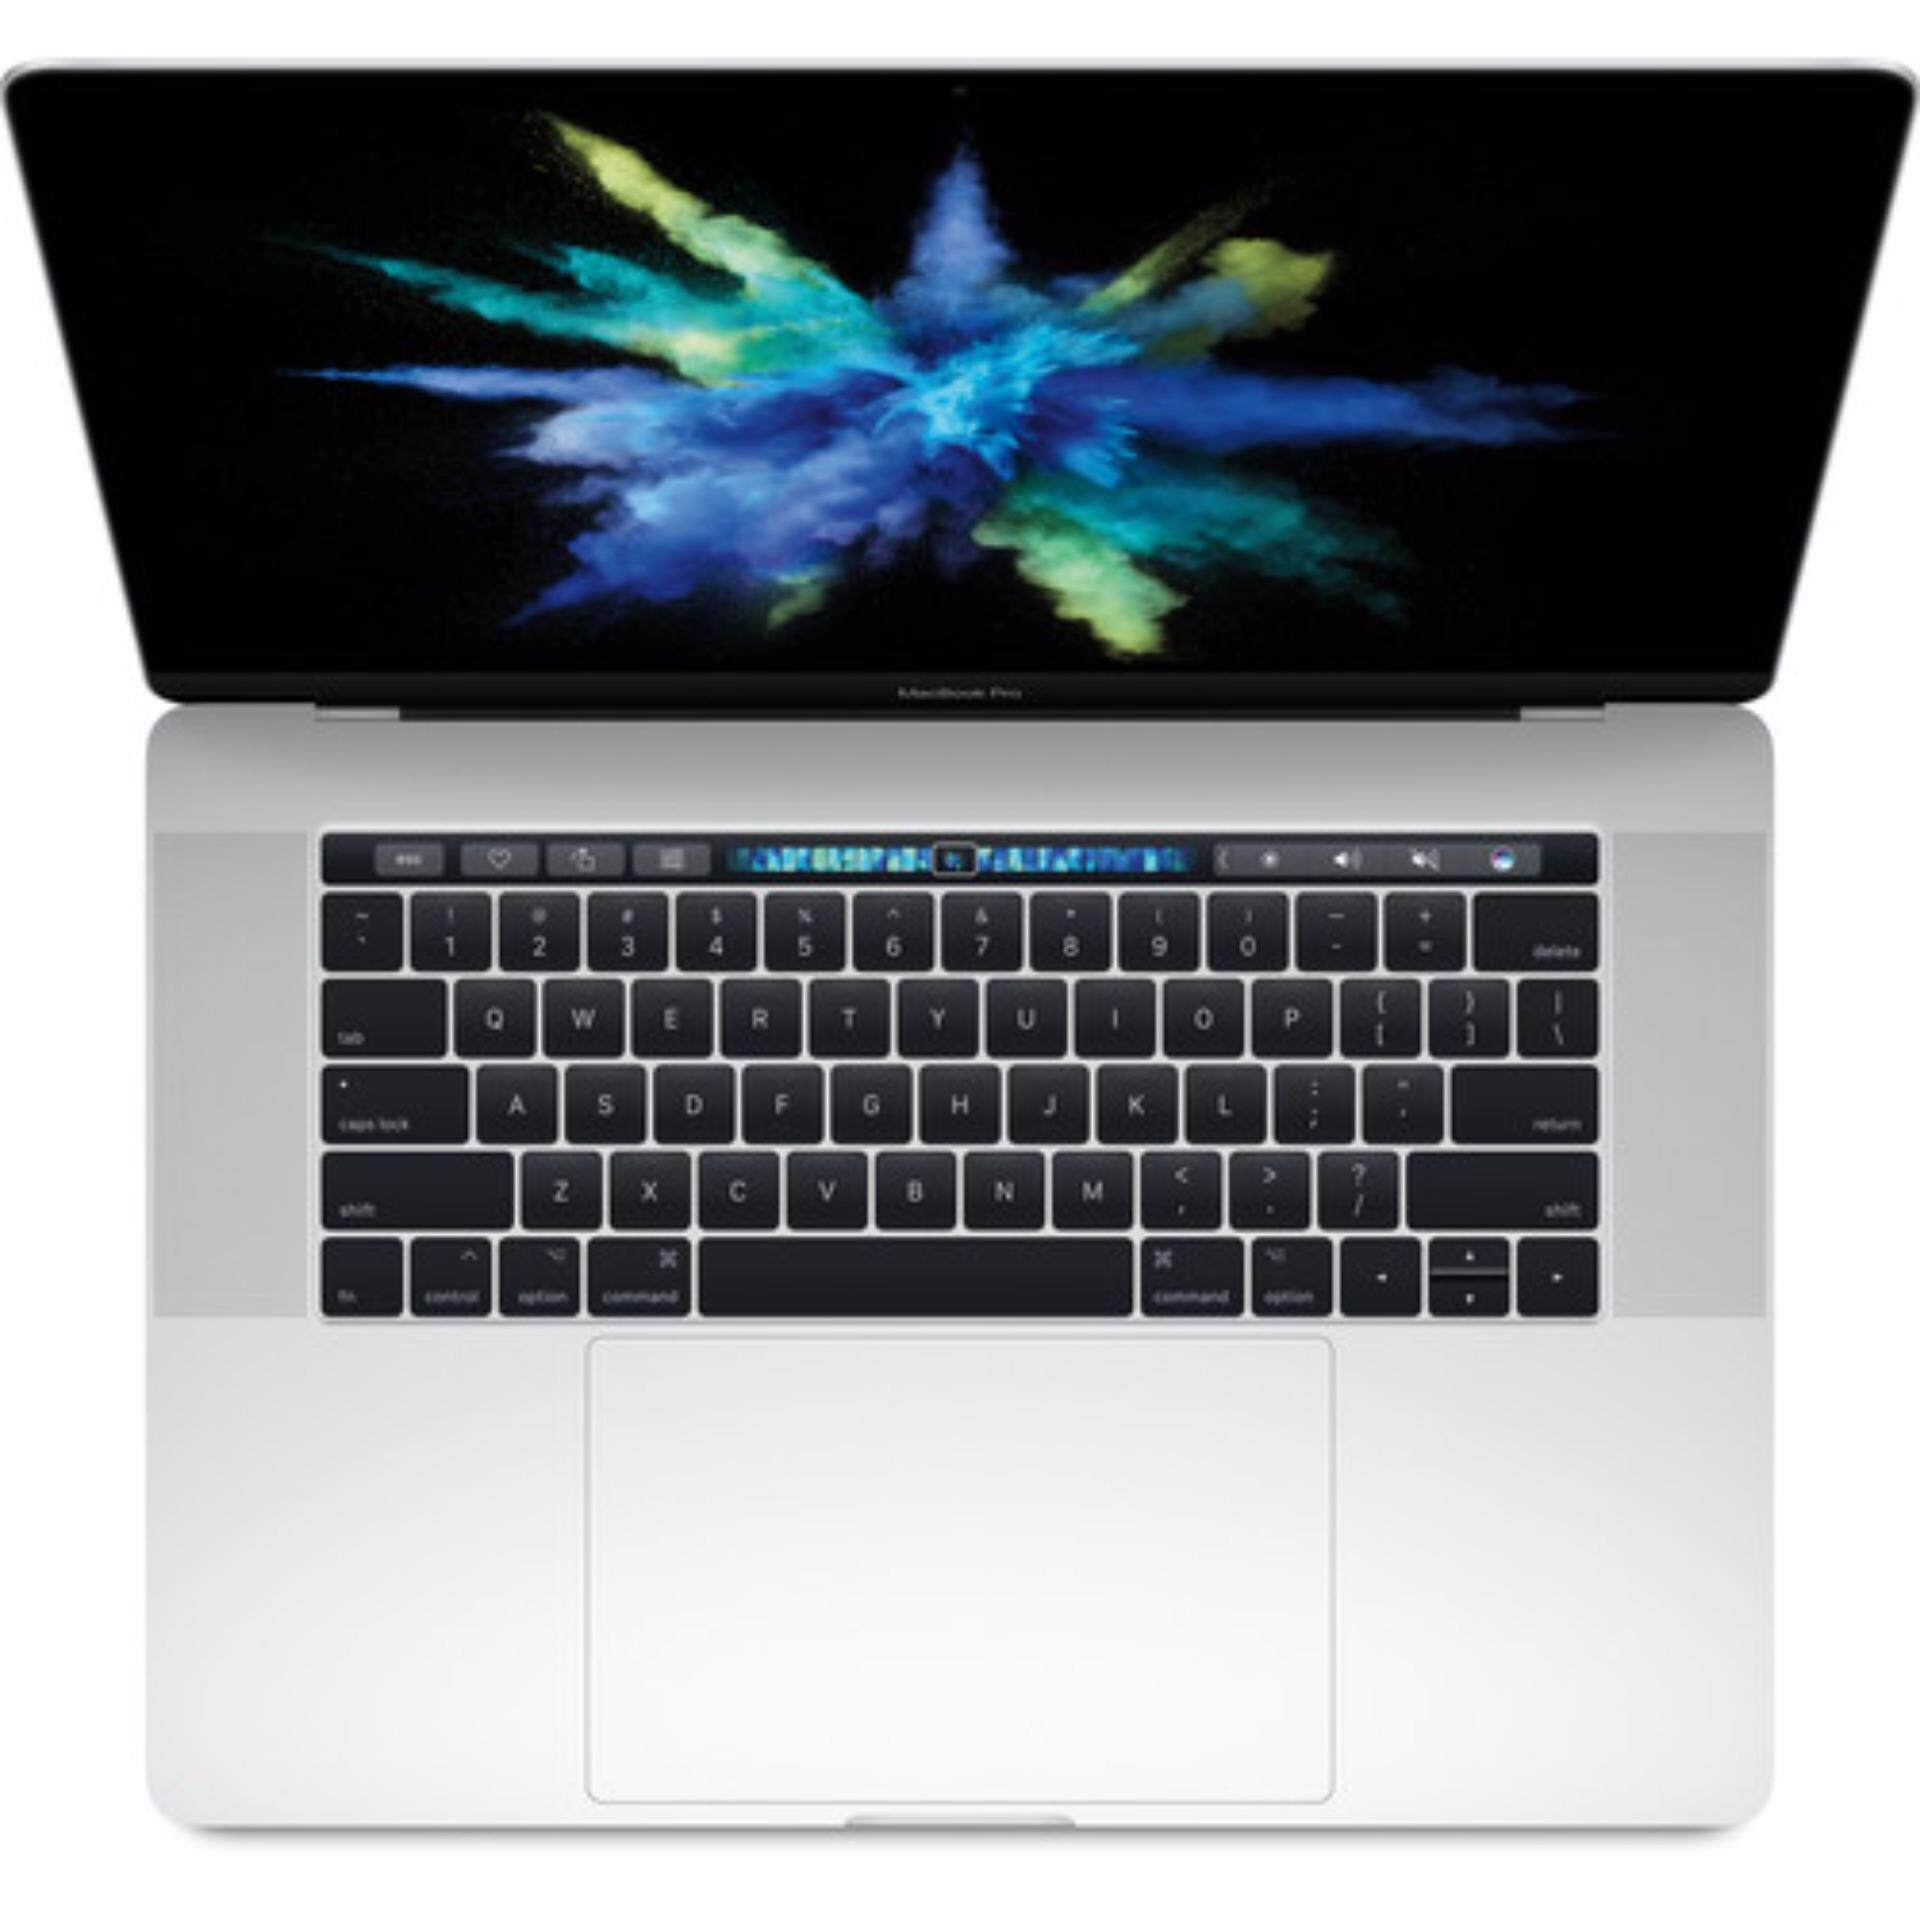 Apple 15.4 MacBook Pro with Touch Bar MPTU2LL/A (Mid 2017, Silver) Malaysia